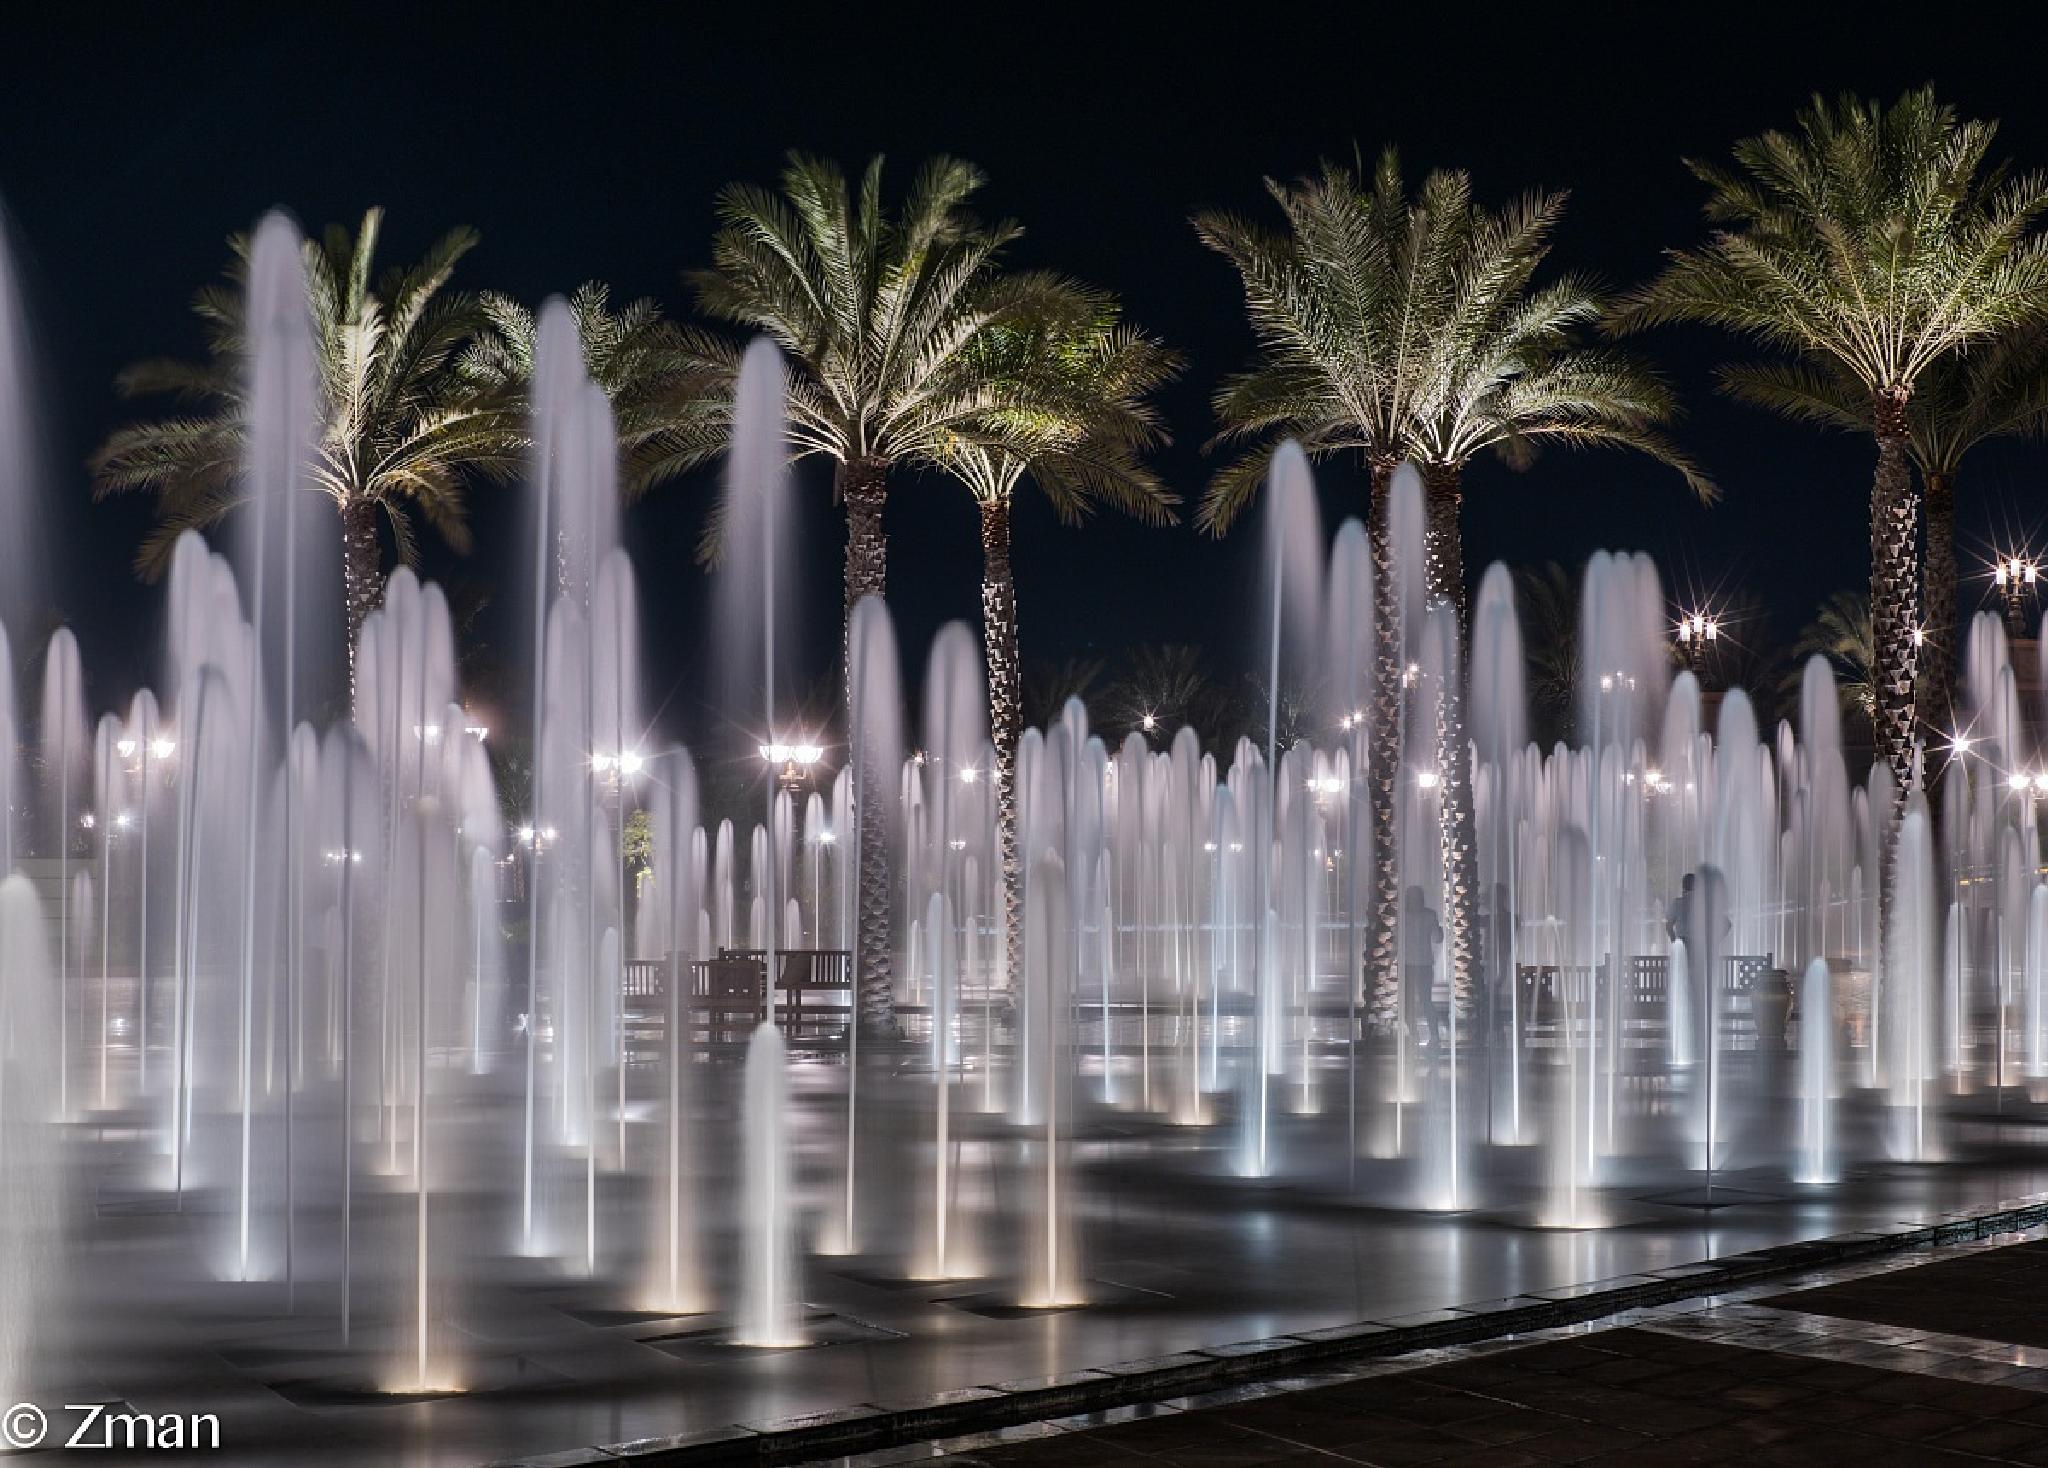 The Fountain In Front of THe Conference Palace Hotel by muhammad.nasser.963